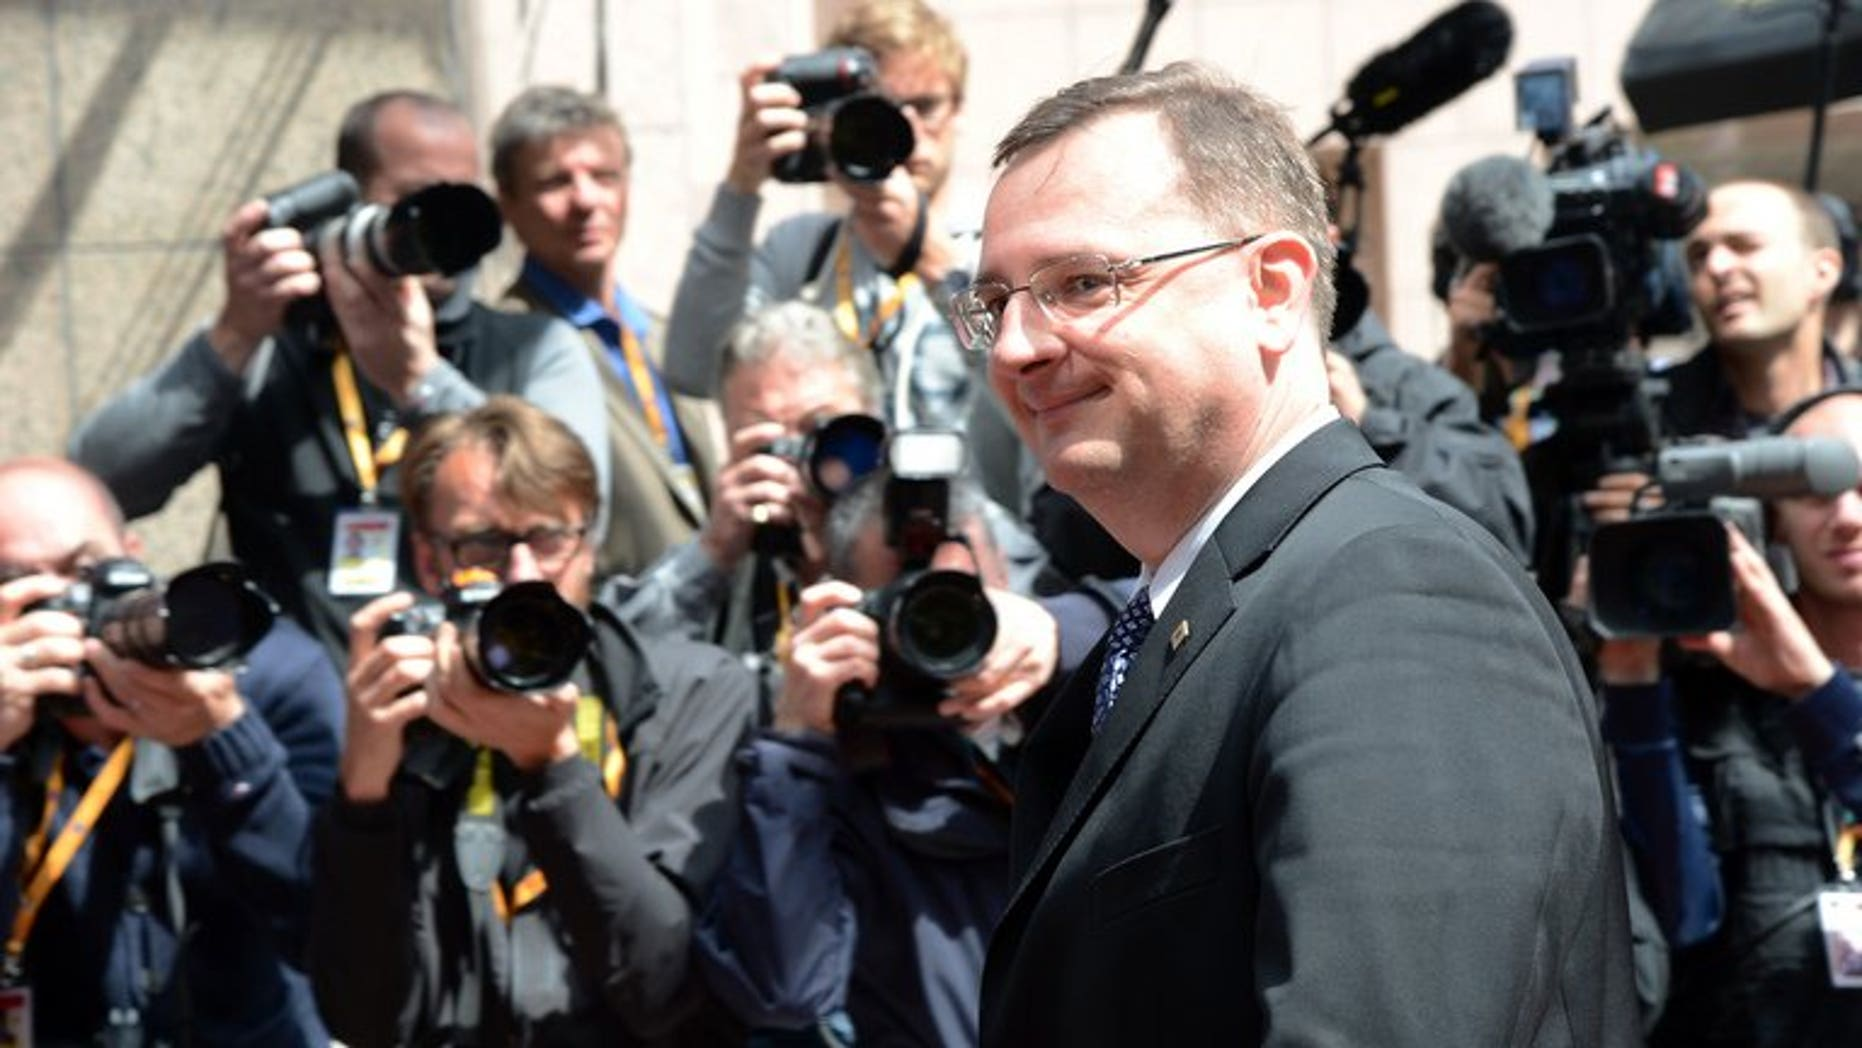 Former Czech Prime Minister Petr Necas arrives for a European Council meeting at the EU headquarters in Brussels on June 27, 2013. A Czech court on Friday freed Jana Nagyova, the lover and former top aide of toppled premier Petr Necas whose government fell after she was arrested in a bribery and spy scandal.